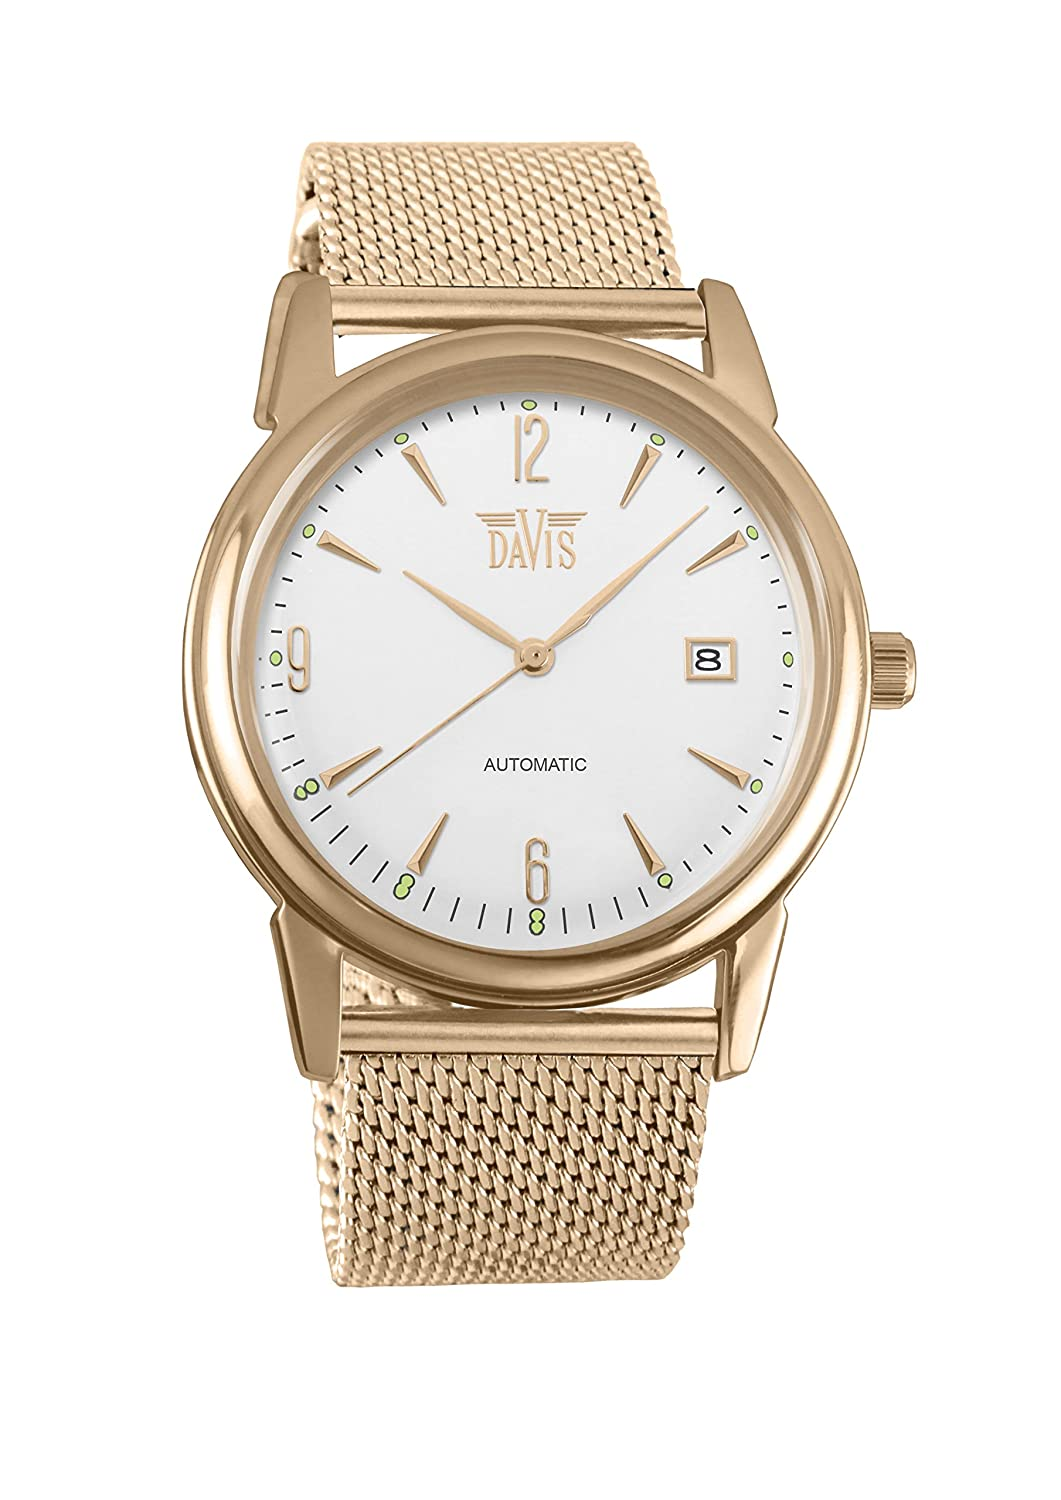 Amazon.com: Davis 1905MB - Mens Automatic Watch Retro Rose Gold Case Steel Dial Date Mesh Milanese Strap: Watches